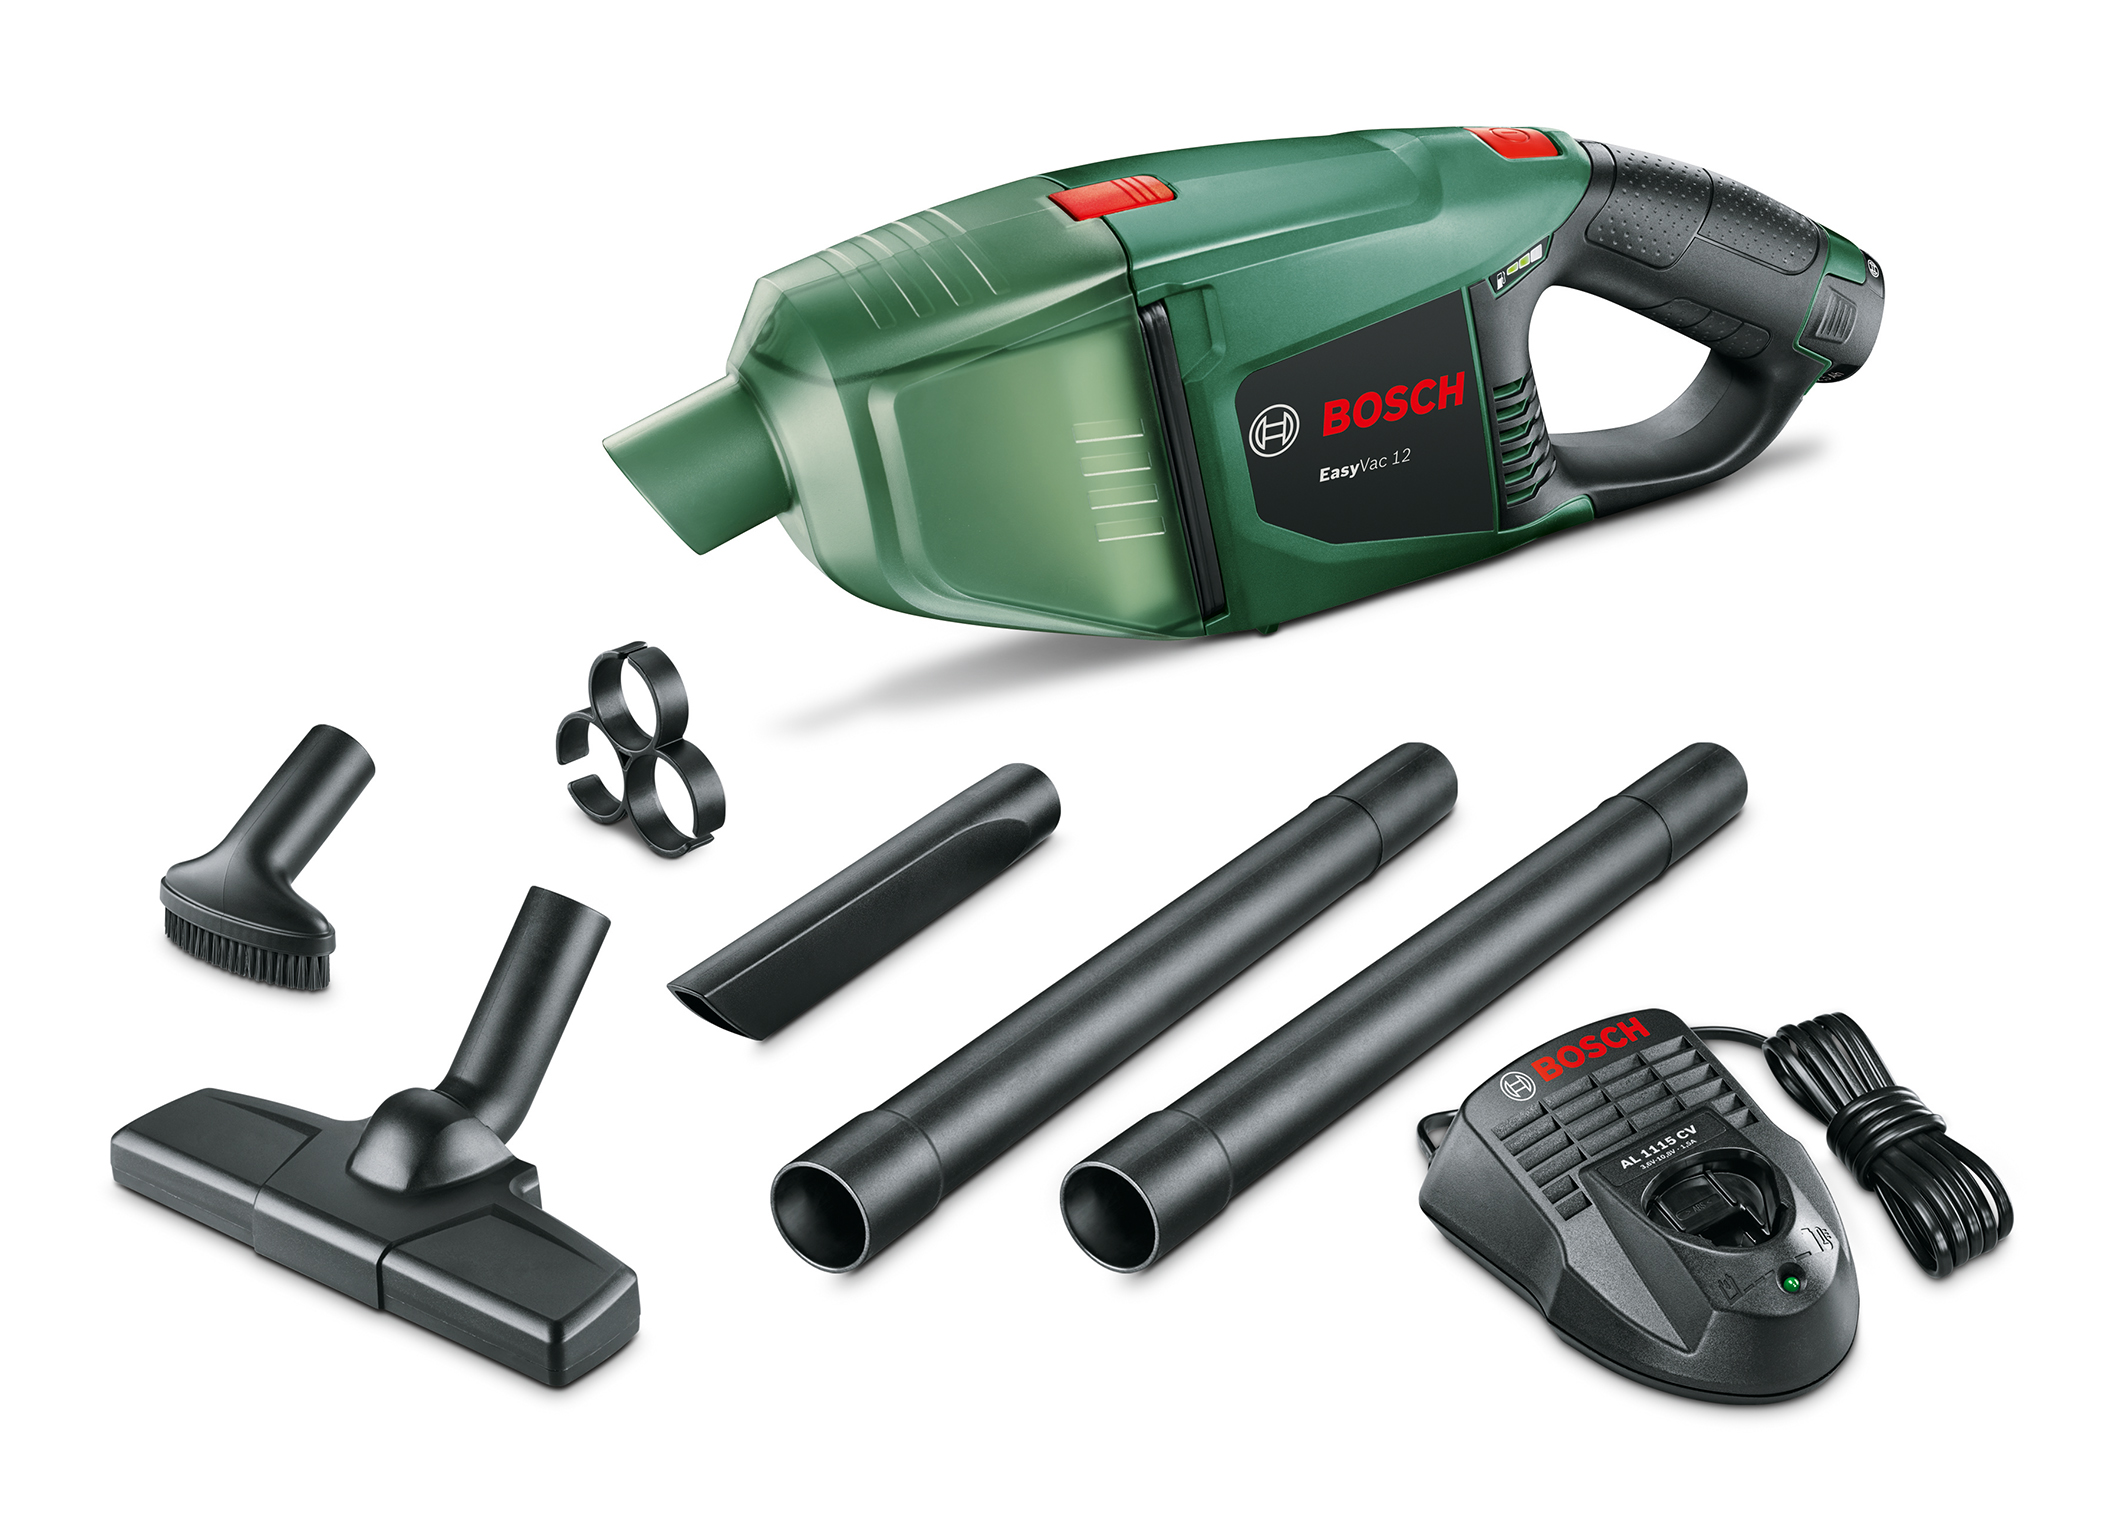 2-in-1 vacuum cleaner that gets everywhere: the EasyVac 12 from Bosch for DIYers